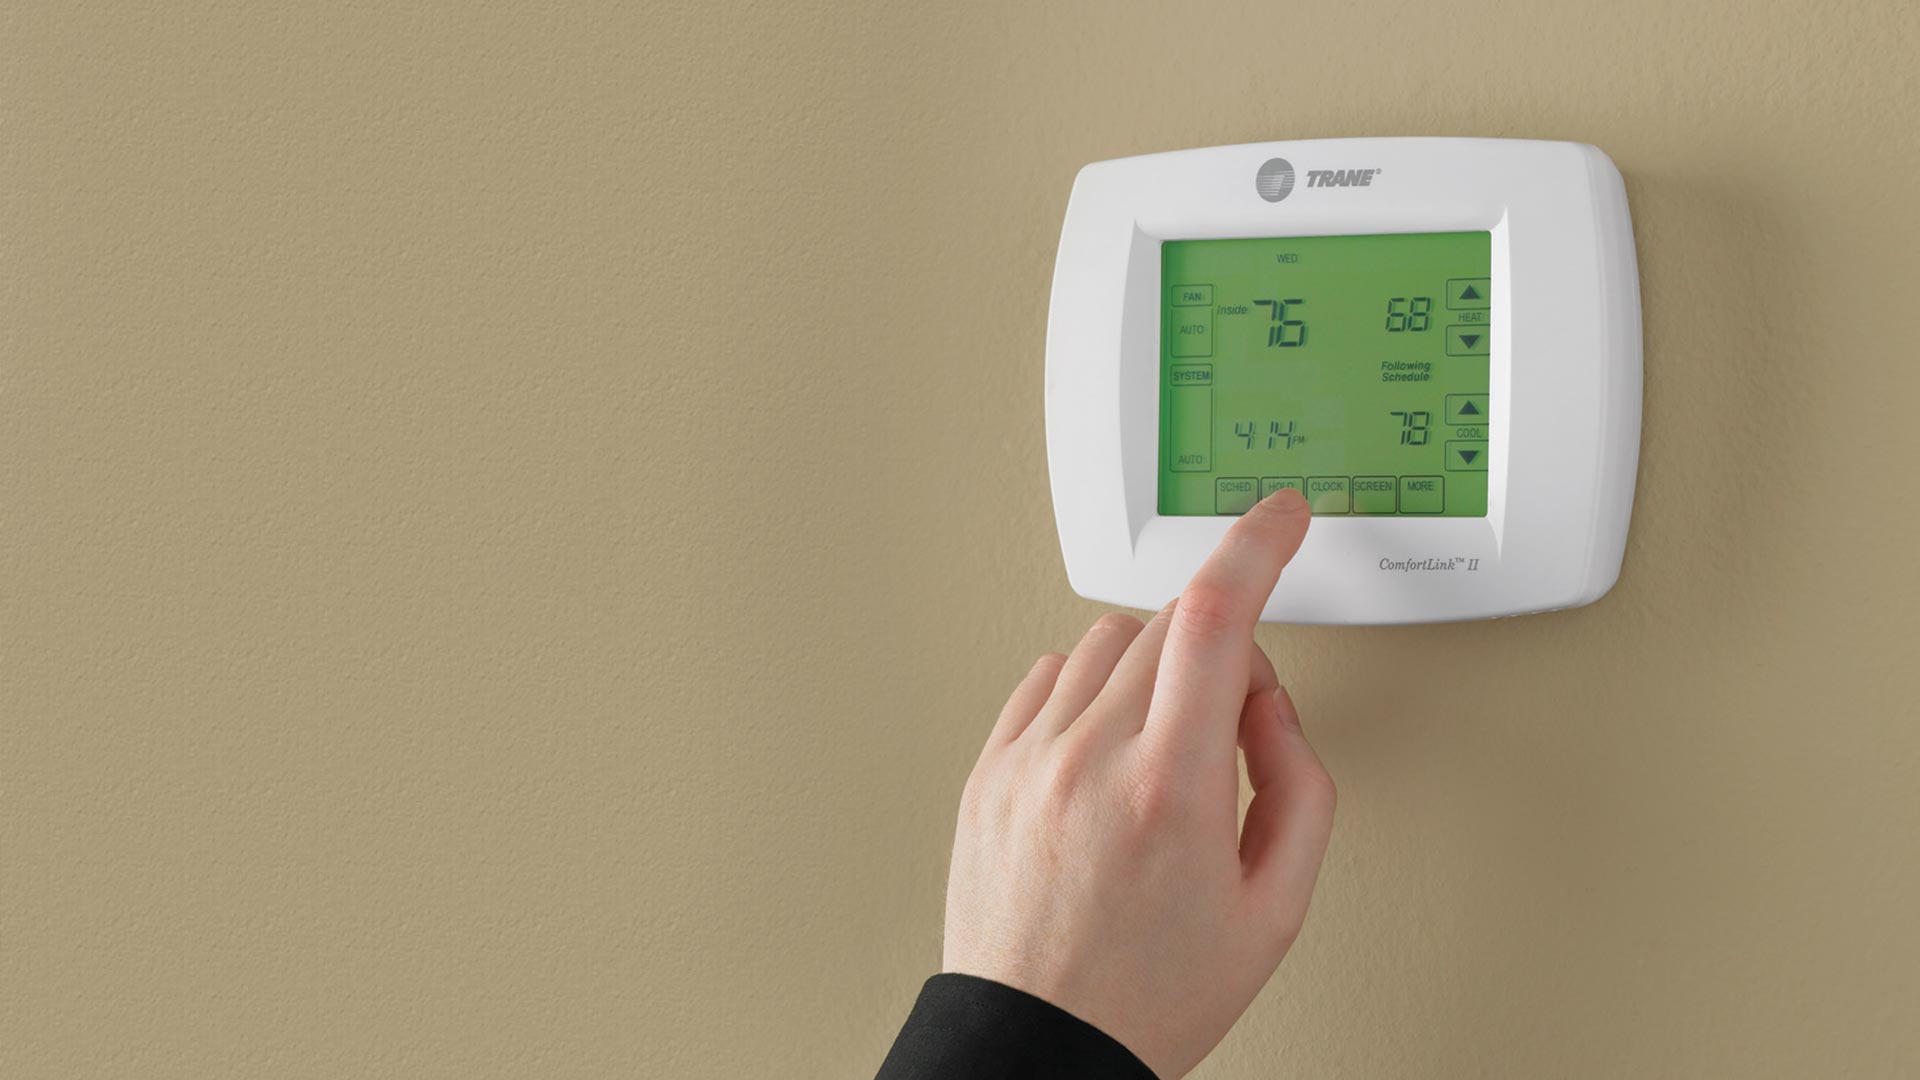 trane ac thermostat. how wifi thermostats make air conditioning simple trane ac thermostat n